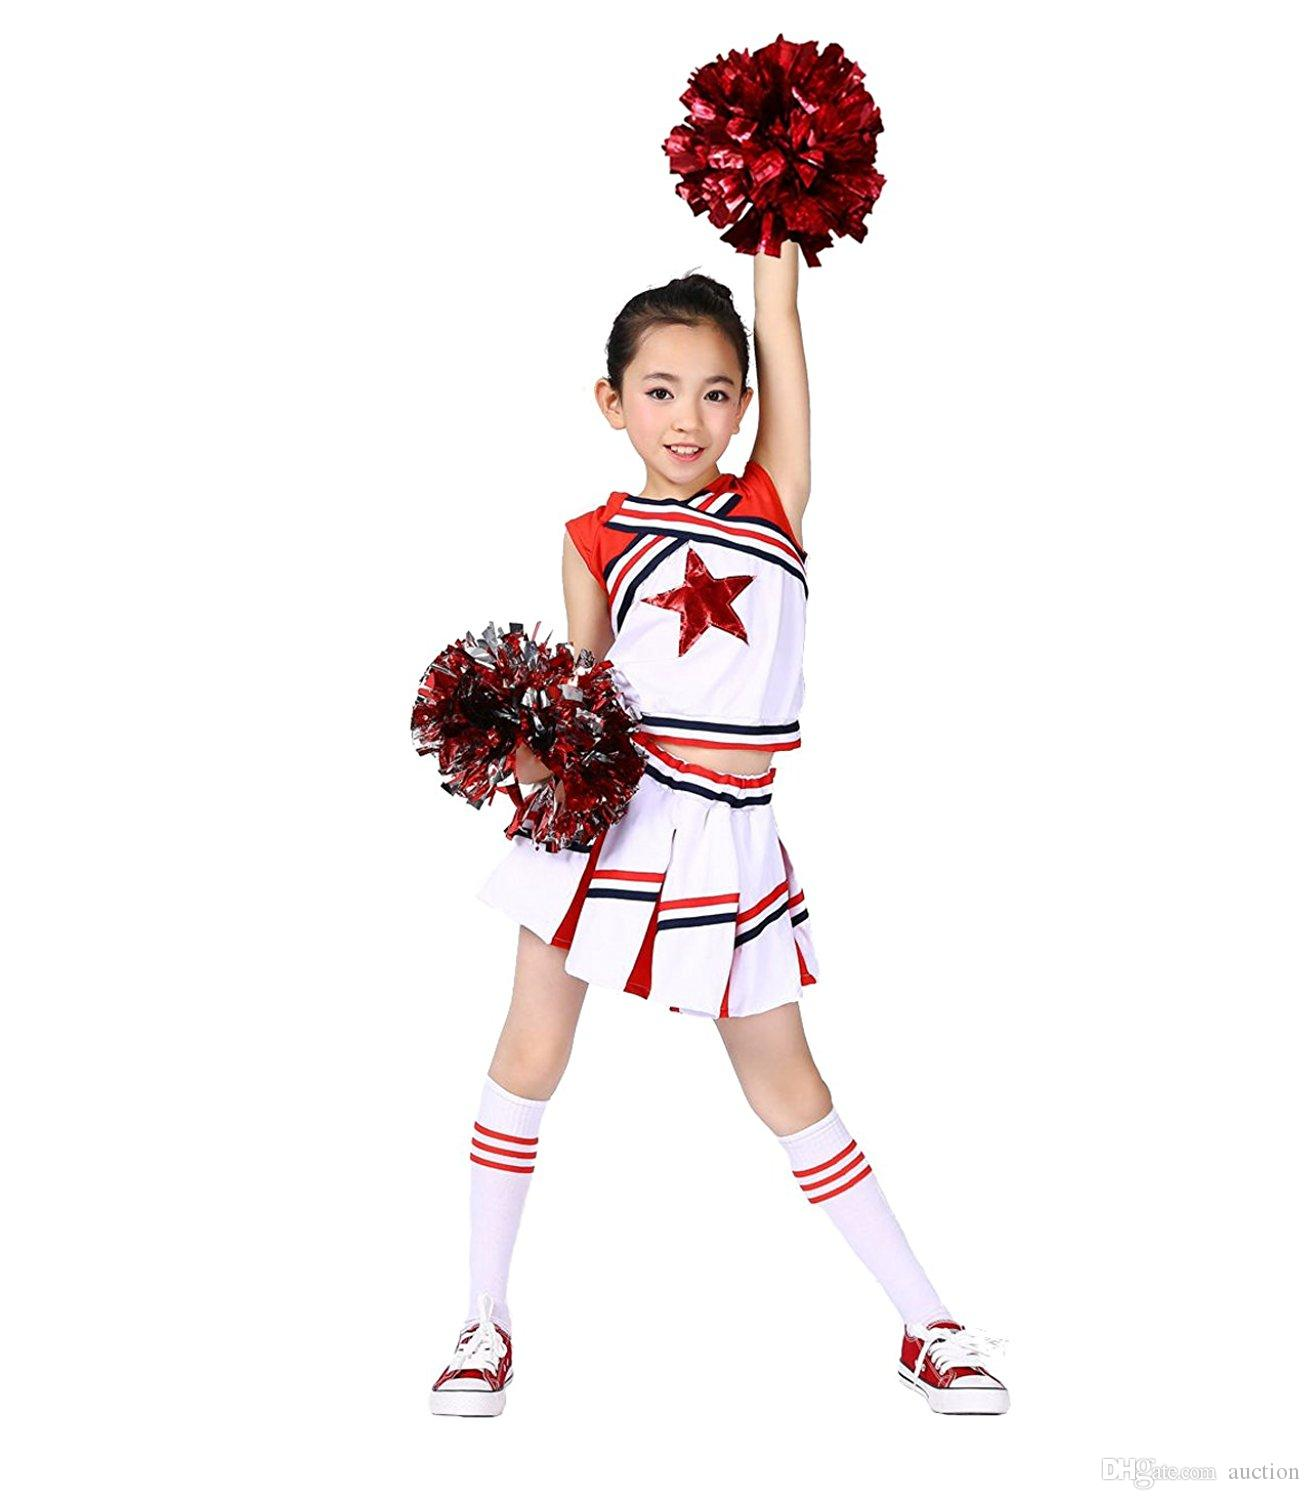 2019 Children Girls Cheerleader Uniform Costume Youth Red Star Cheer Outfit  With Match Pompoms Socks From Auction 3da745ac7